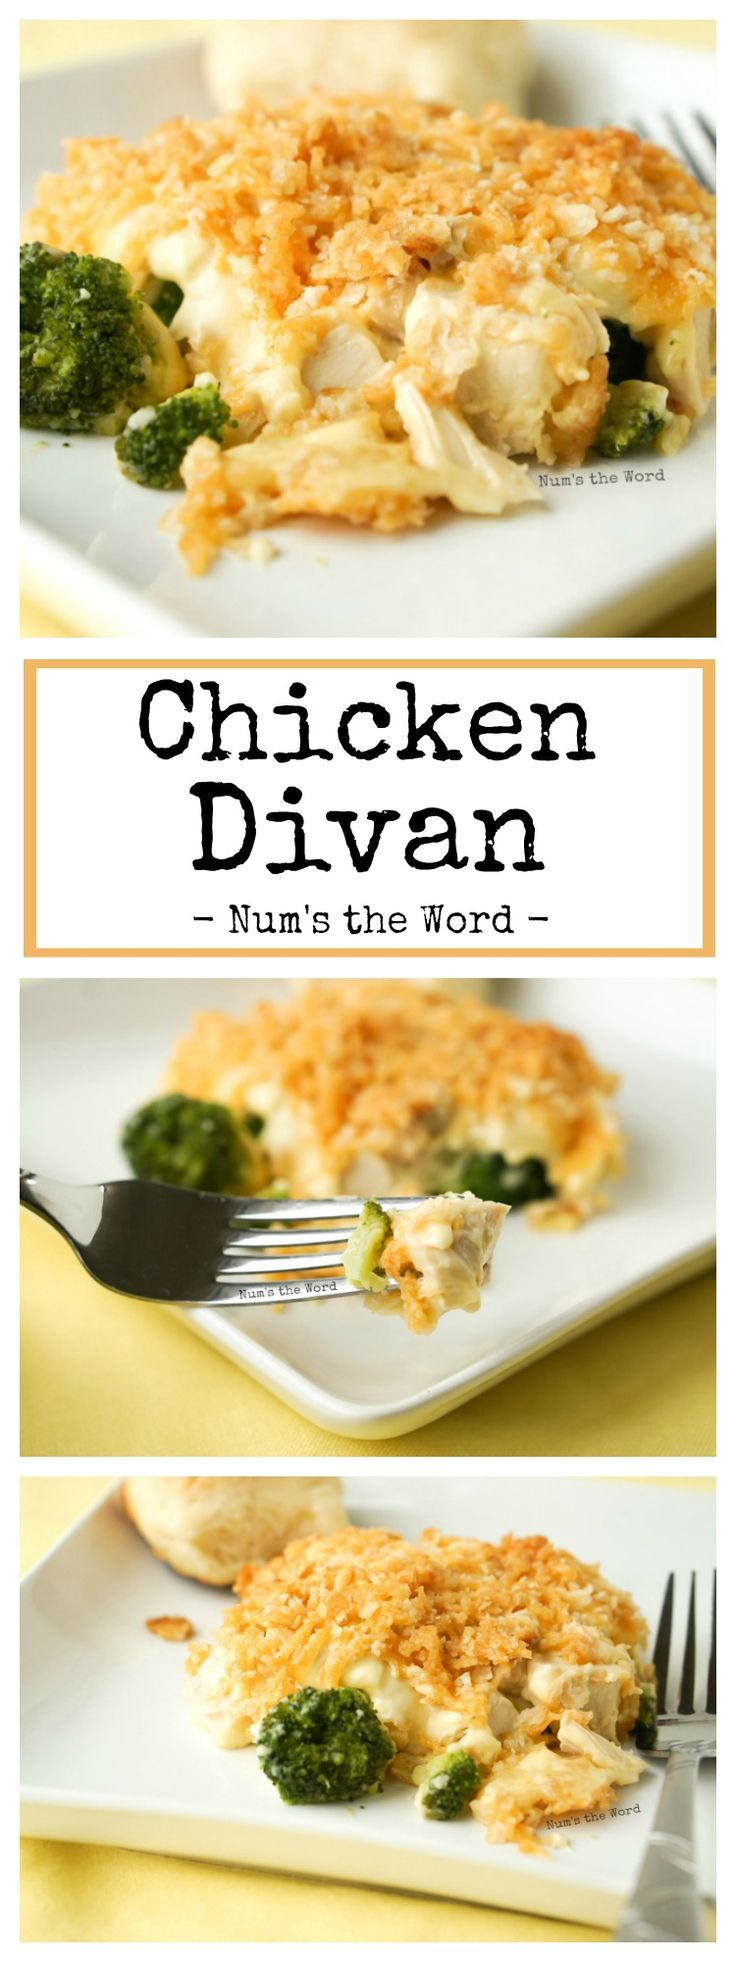 CHICKEN DIVAN  ==  1 (14 ounce) package frozen broccoli florets 2 cups cooked chicken or turkey, diced 2 (10.5 ounce) cream of chicken soup 1/2 cup milk 1 cup Mayonnaise 1 teaspoon lemon juice 1/2 cup Ritz crackers, crushed 1/2 cup grated sharp cheddar cheese 3 Tablespoons butter, melted   ====